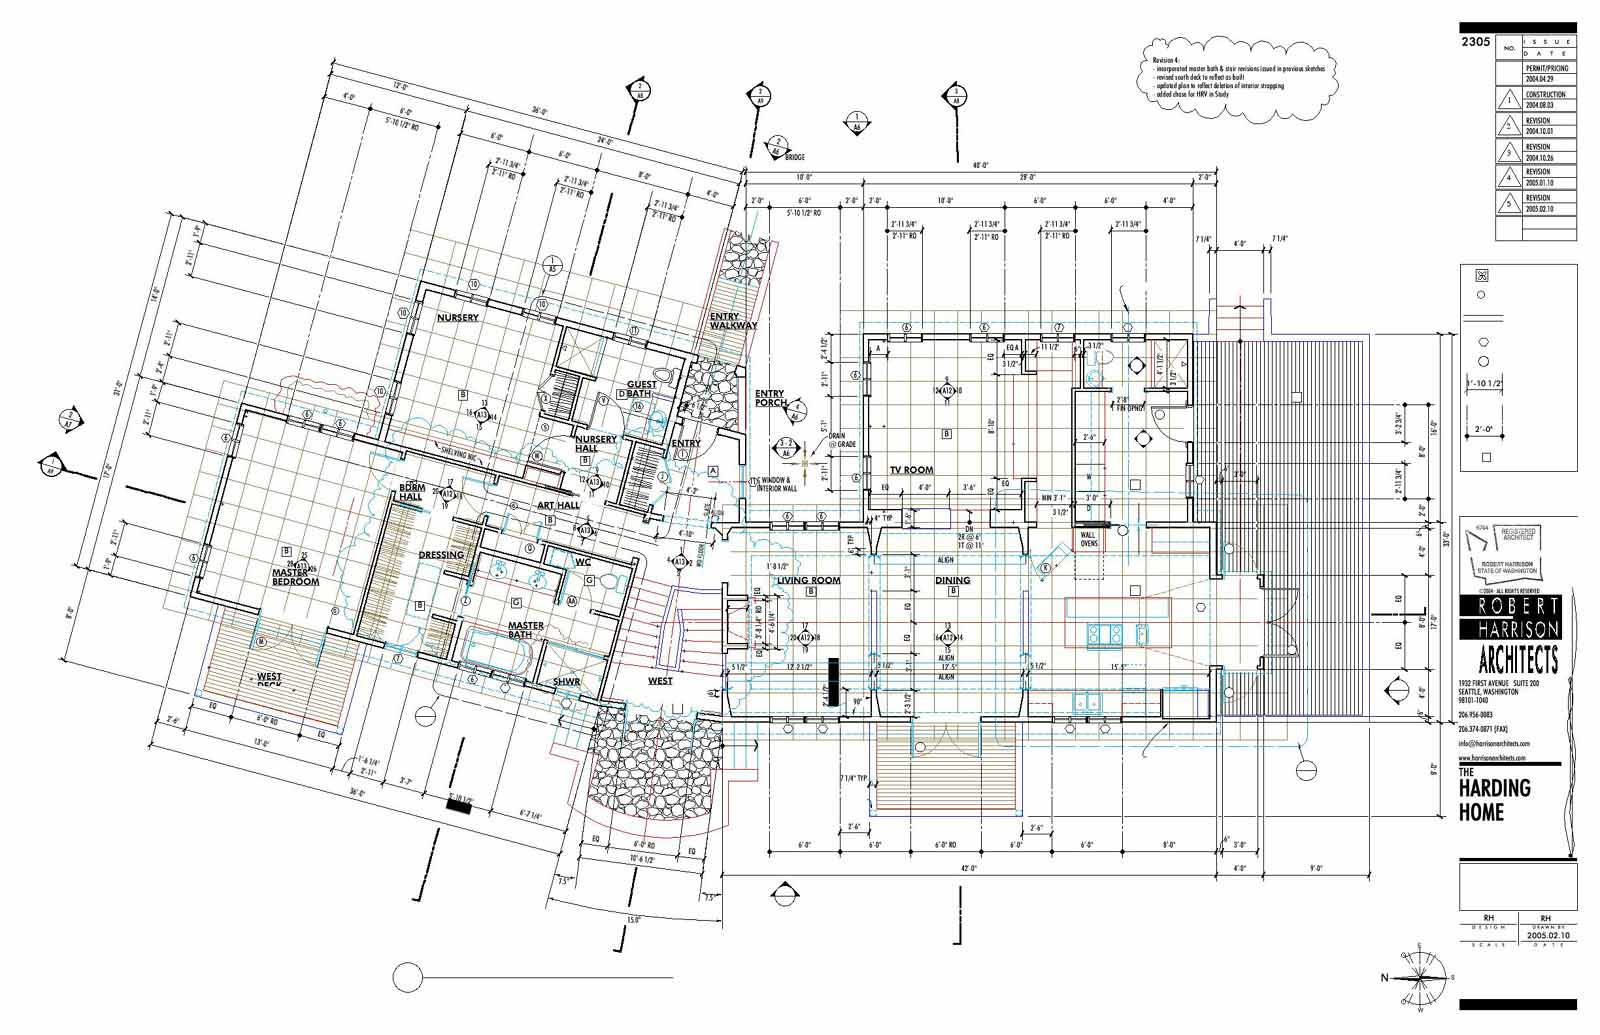 Sophie al yahya july 2016 for Architectural plans and permits